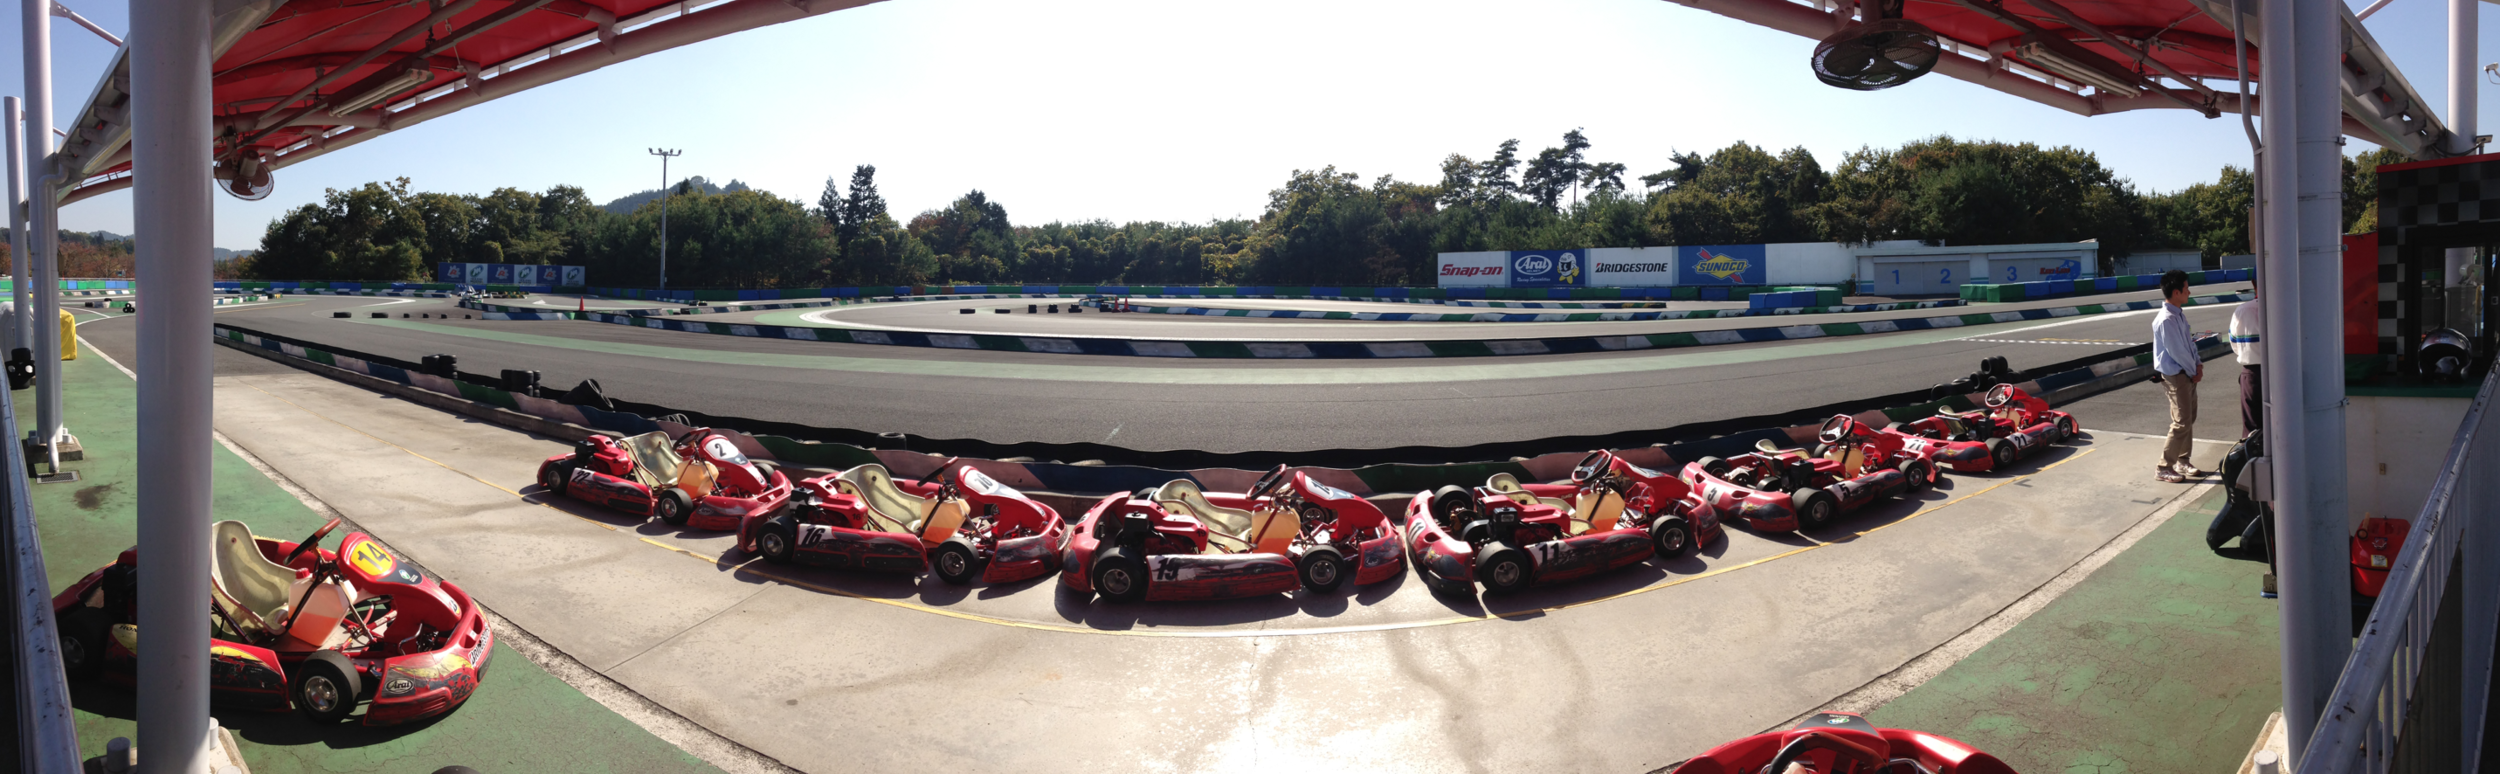 ^ GoKarting yyeeehaaww~! < Motorcyclist's run on our stomachs! Japanese food + onsen + motorbikes = bliss